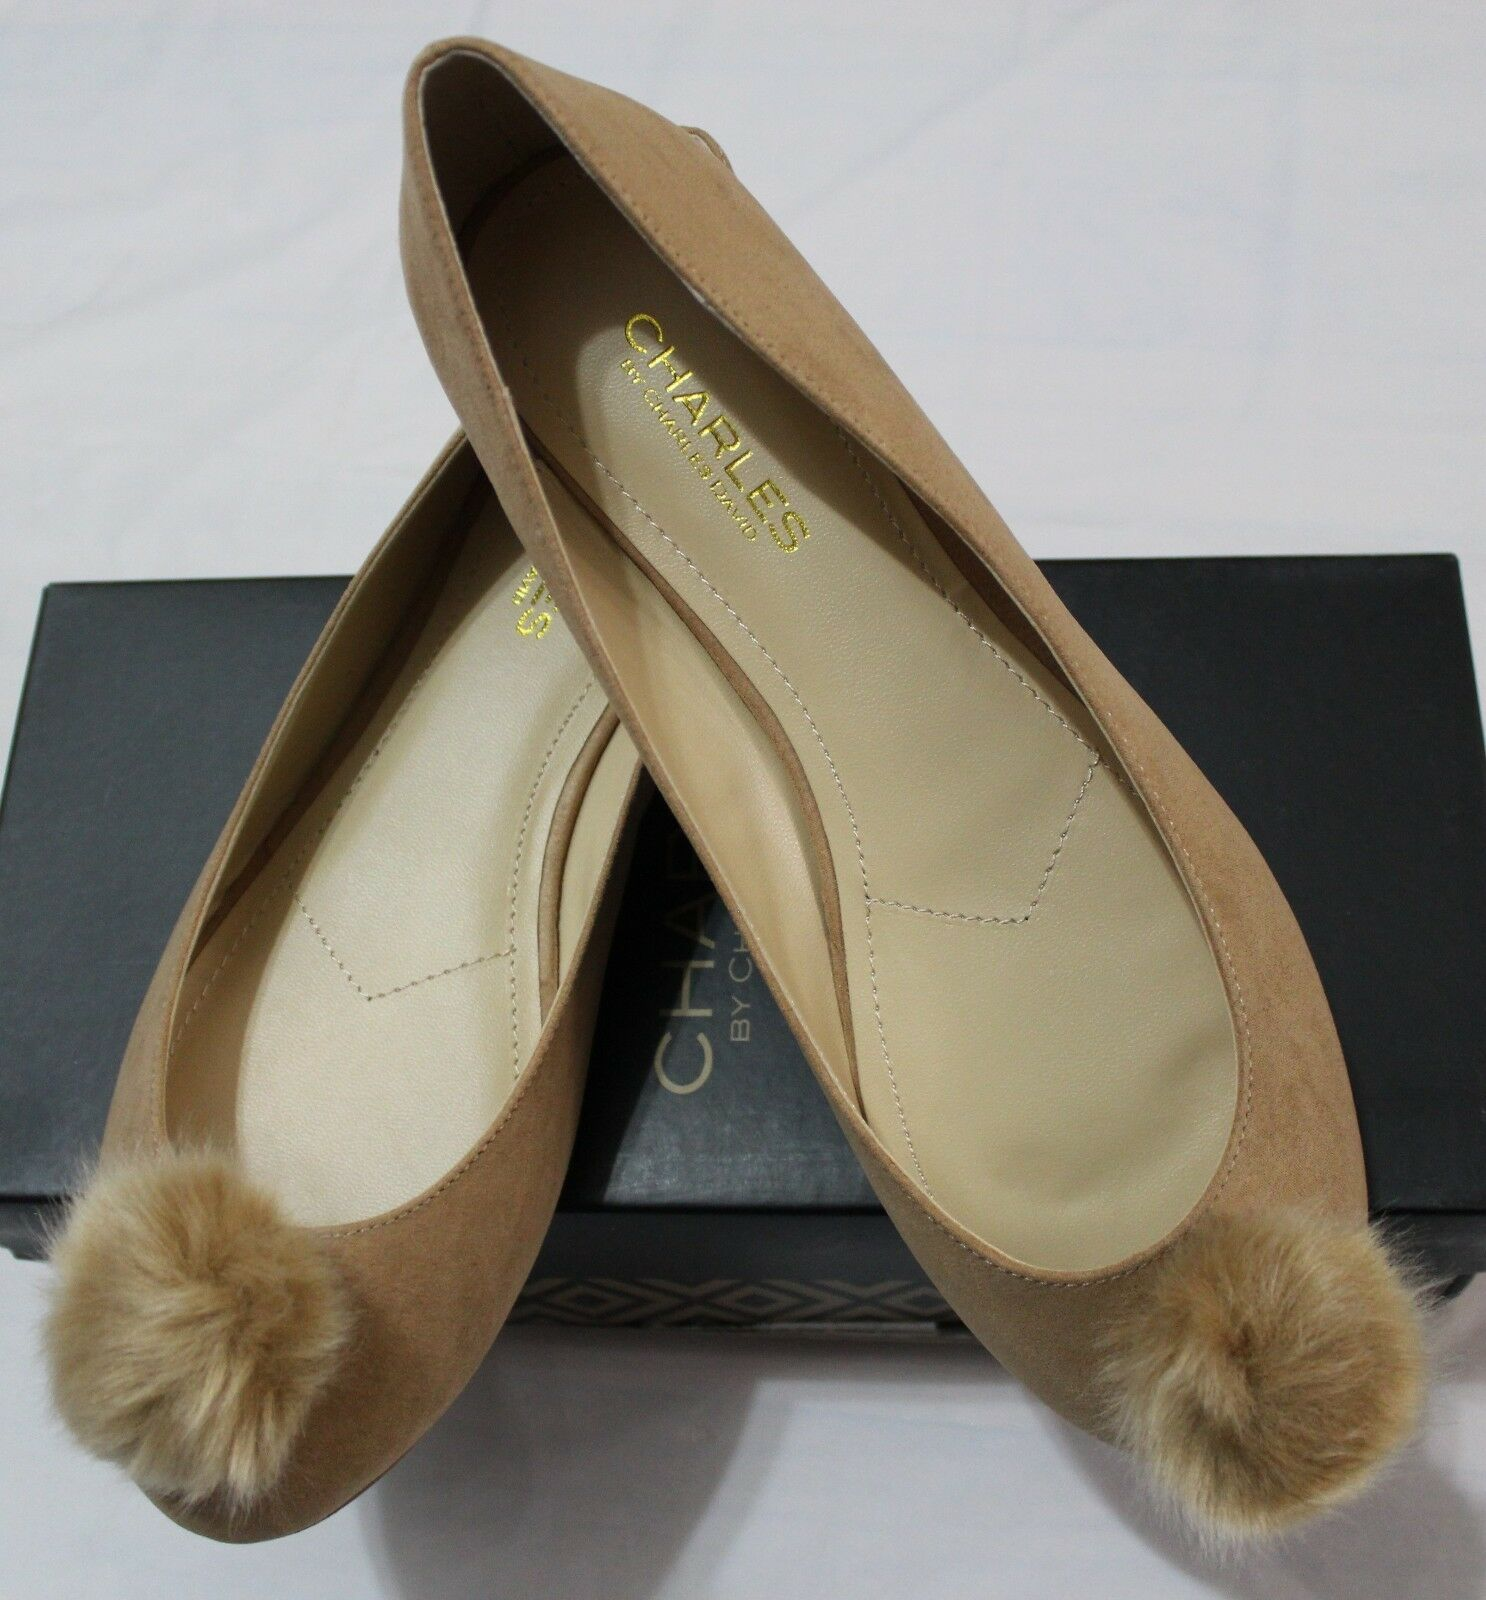 120 CHARLES BY CHARLES DAVID DANNI CHSTNT MCROSUEDE-FAUX FUR SHOES US 8.5M